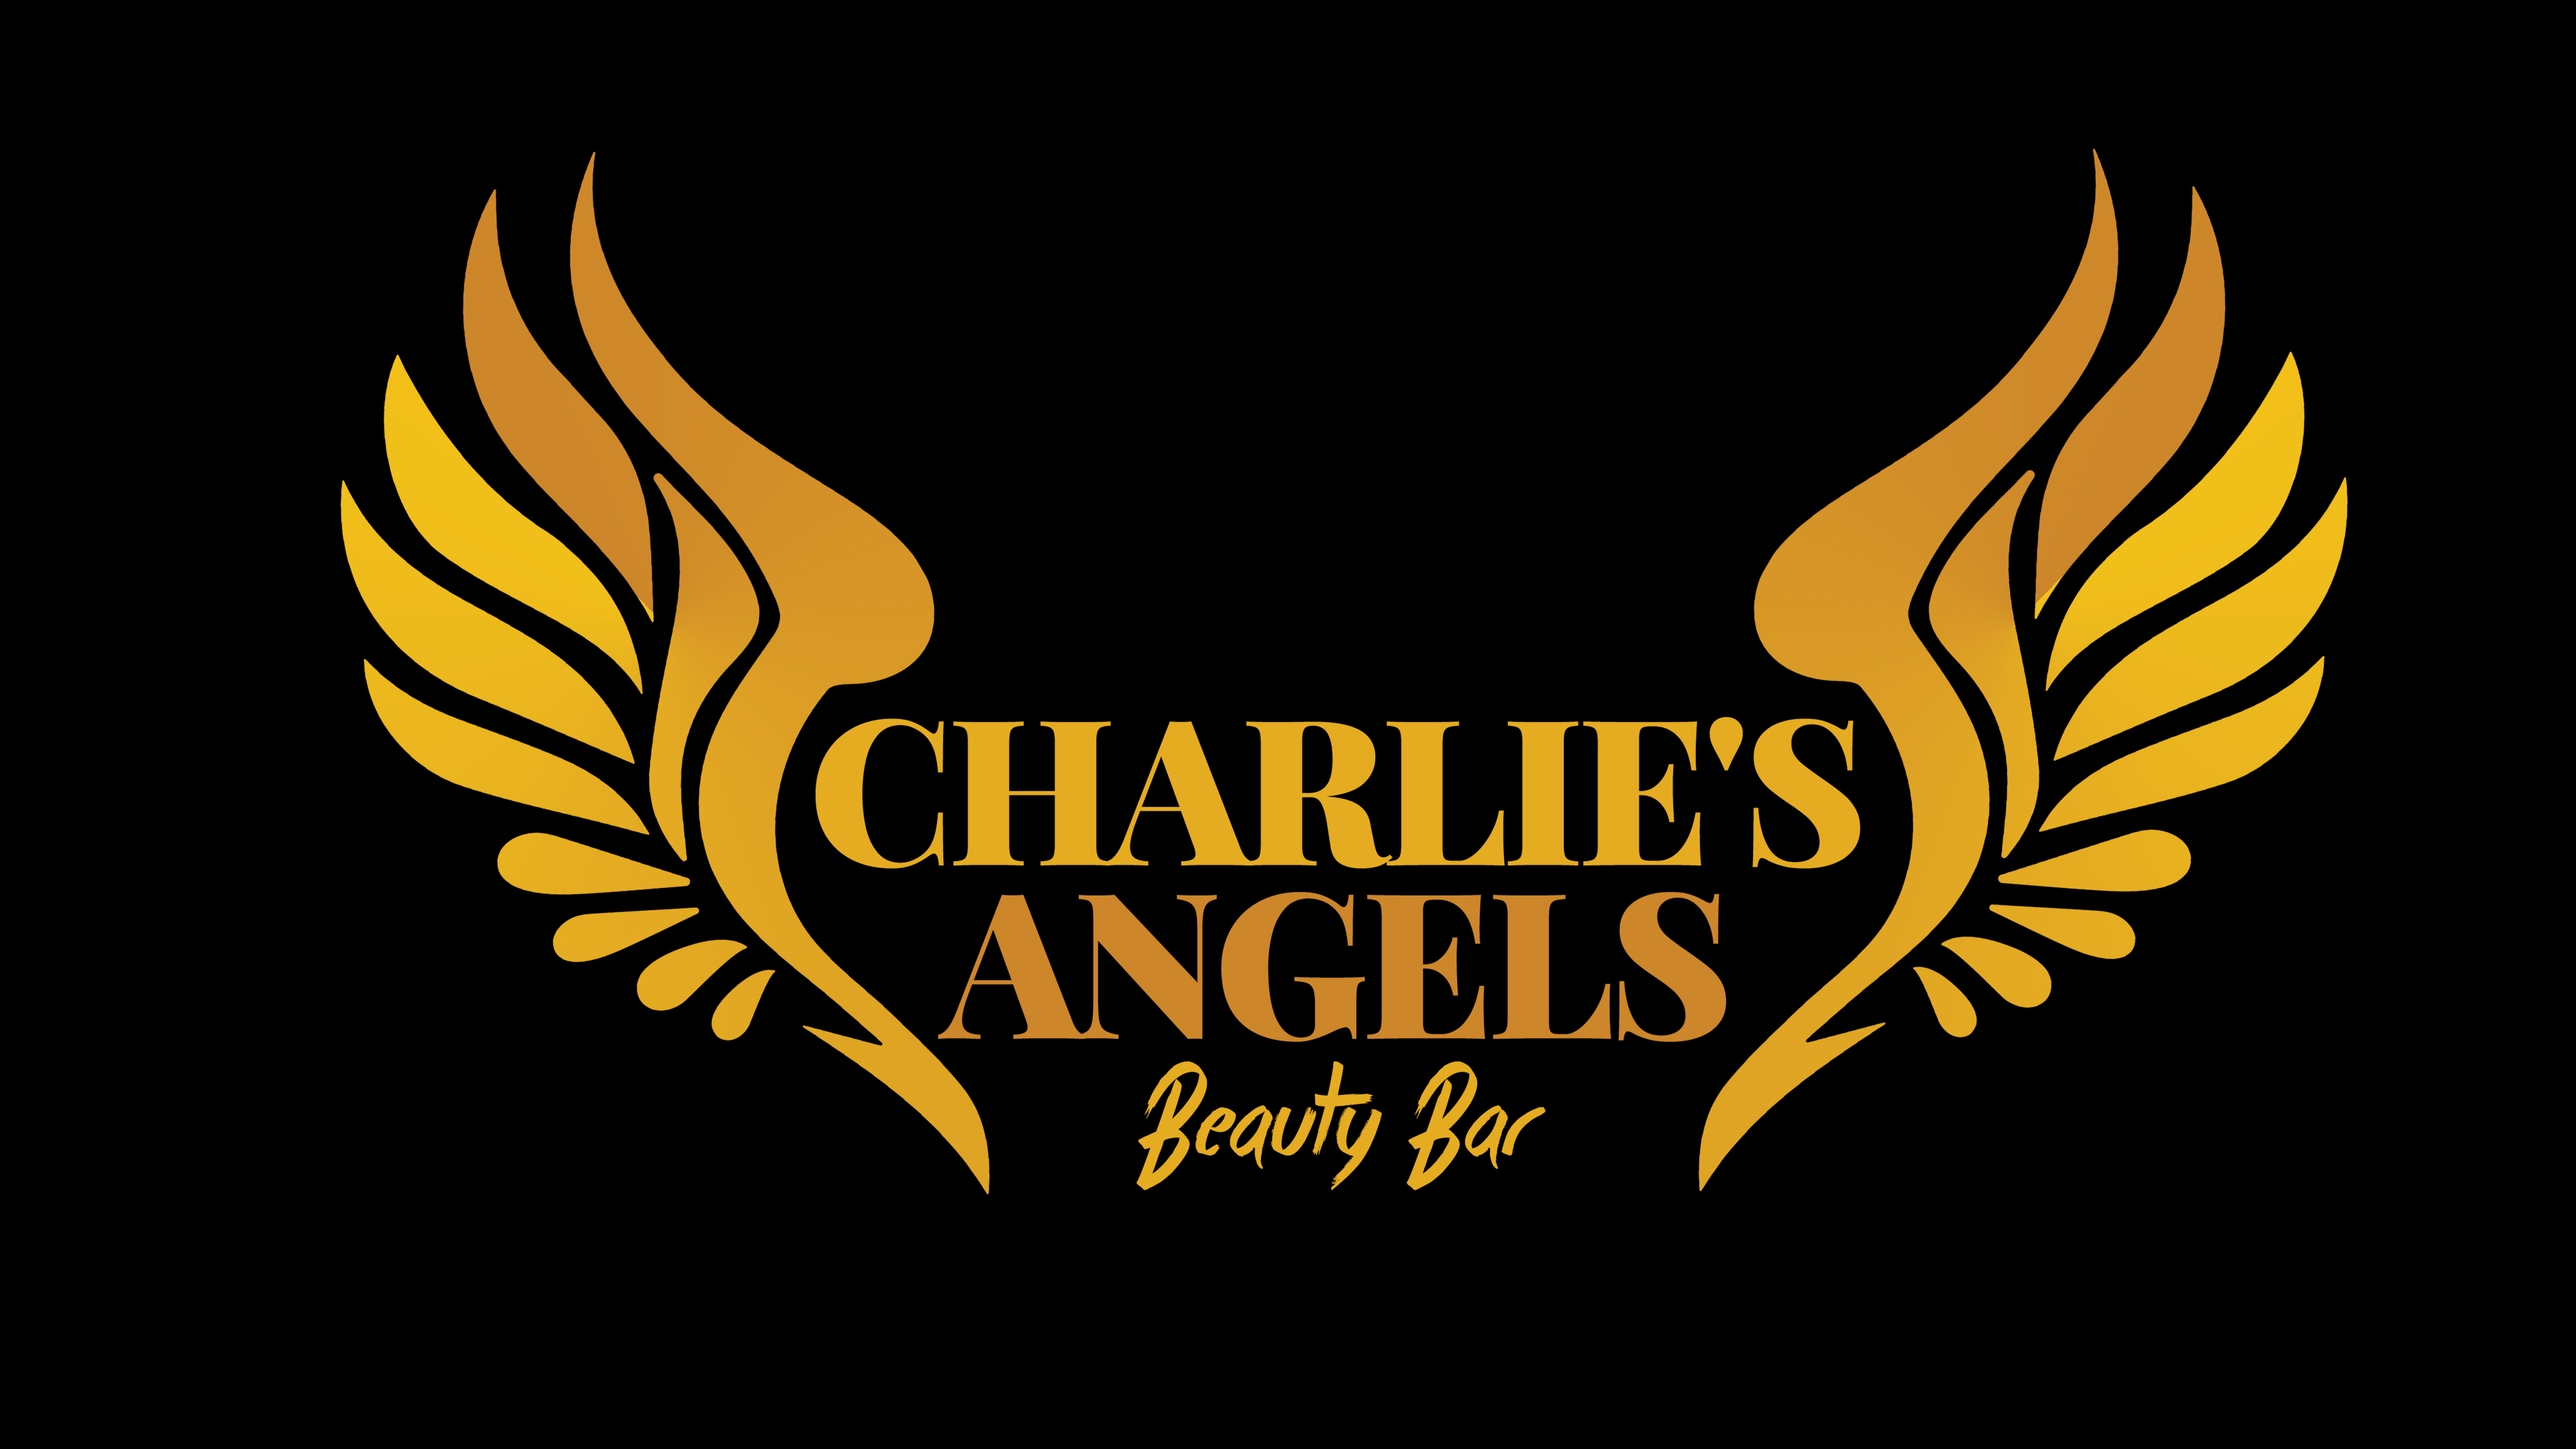 Charlie's Angels Beauty Bar